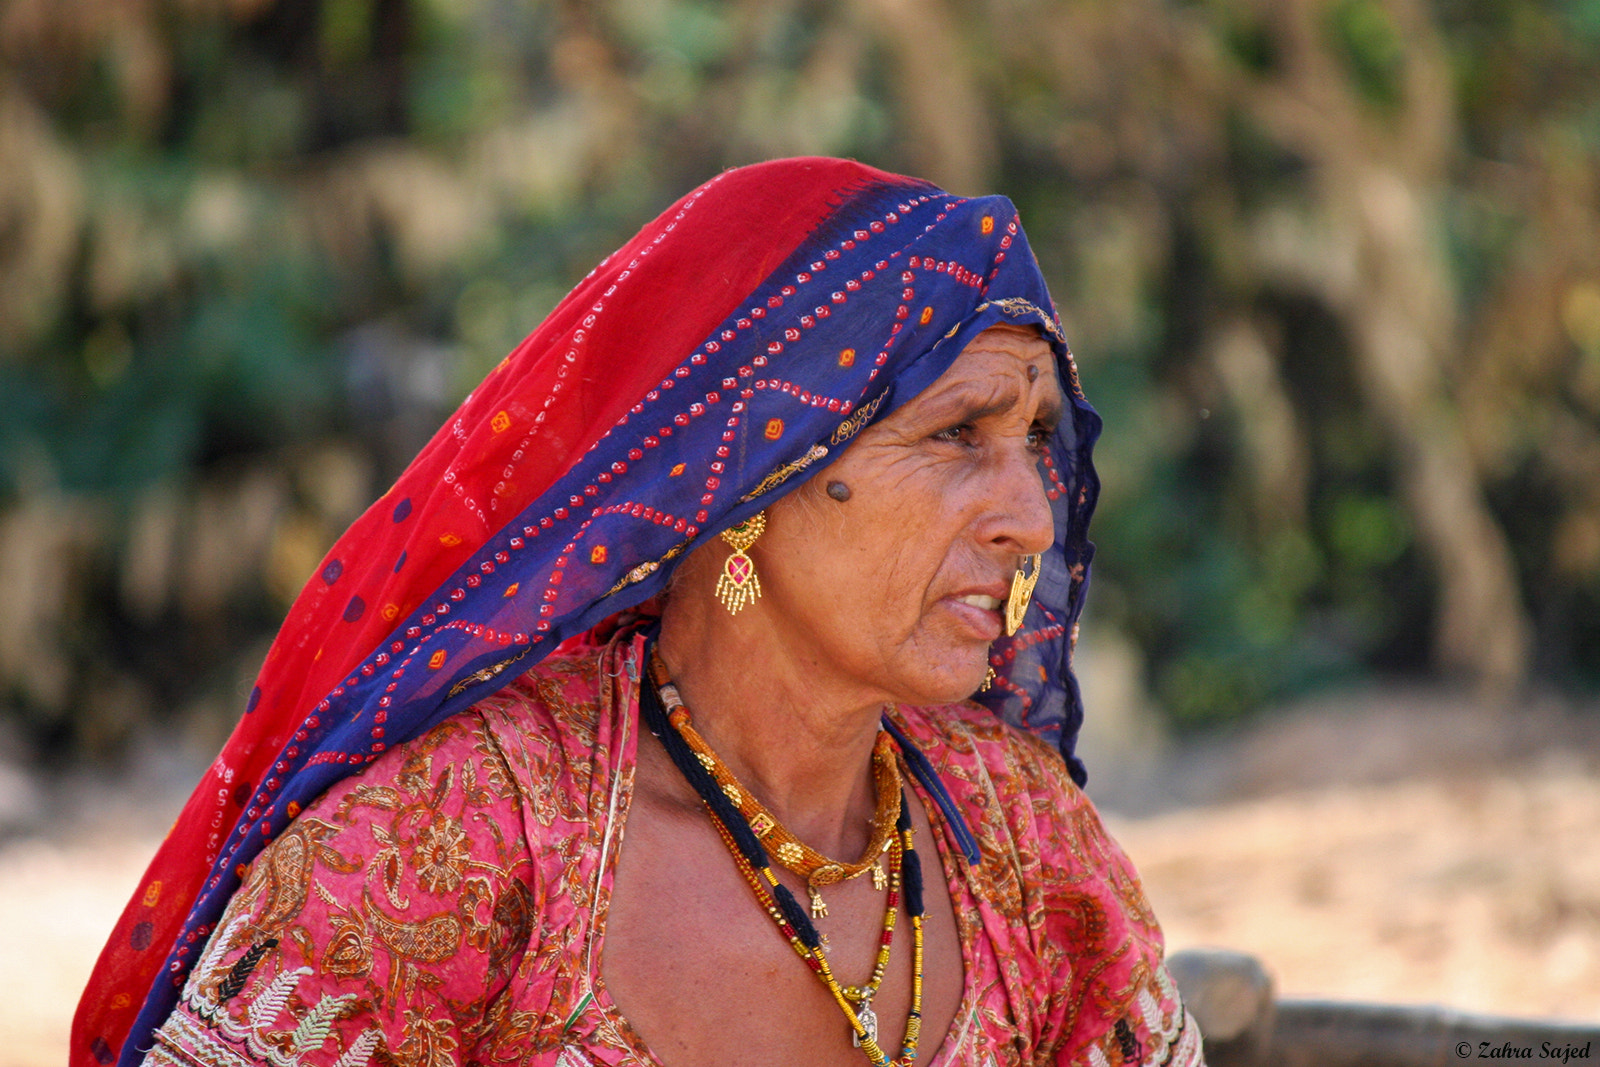 Photograph Rajasthani's woman by zahra sajed on 500px